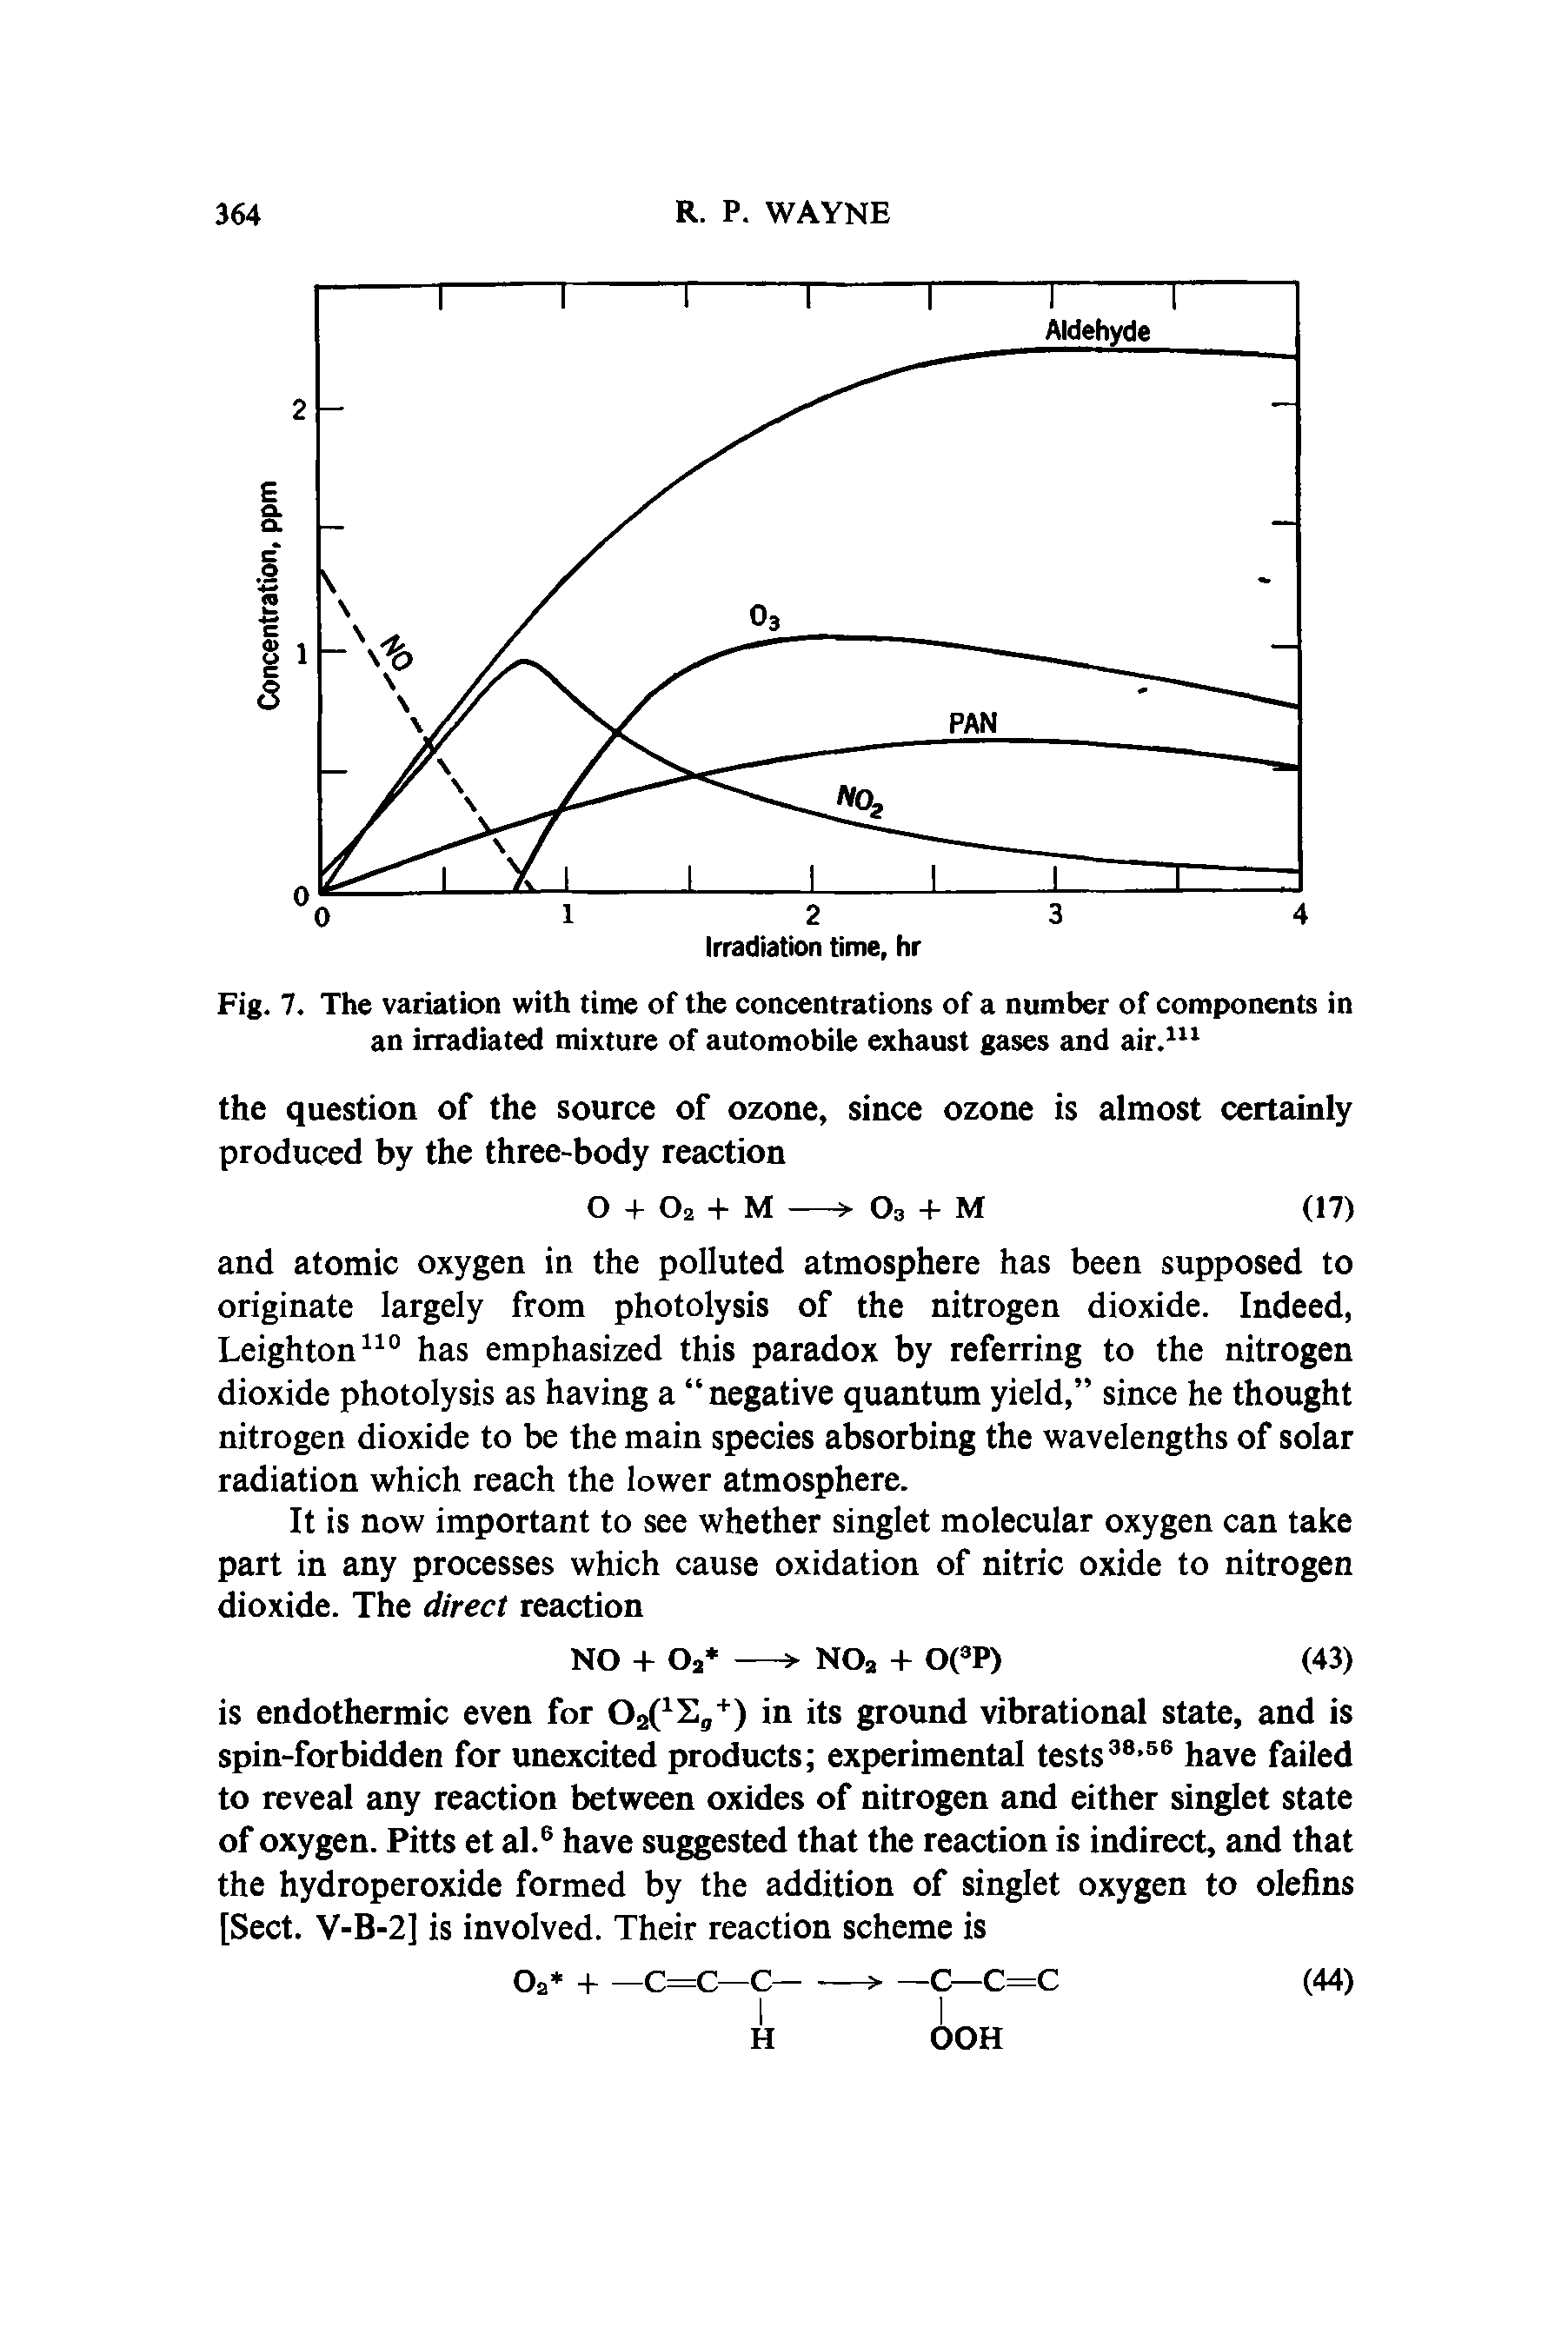 "Fig. 7. The <a href=""/info/variations_with_time_for_of_pcp"">variation with time</a> of the concentrations of a number of components in an irradiated mixture of <a href=""/info/automobile_exhaust"">automobile exhaust</a> gases and air.111"